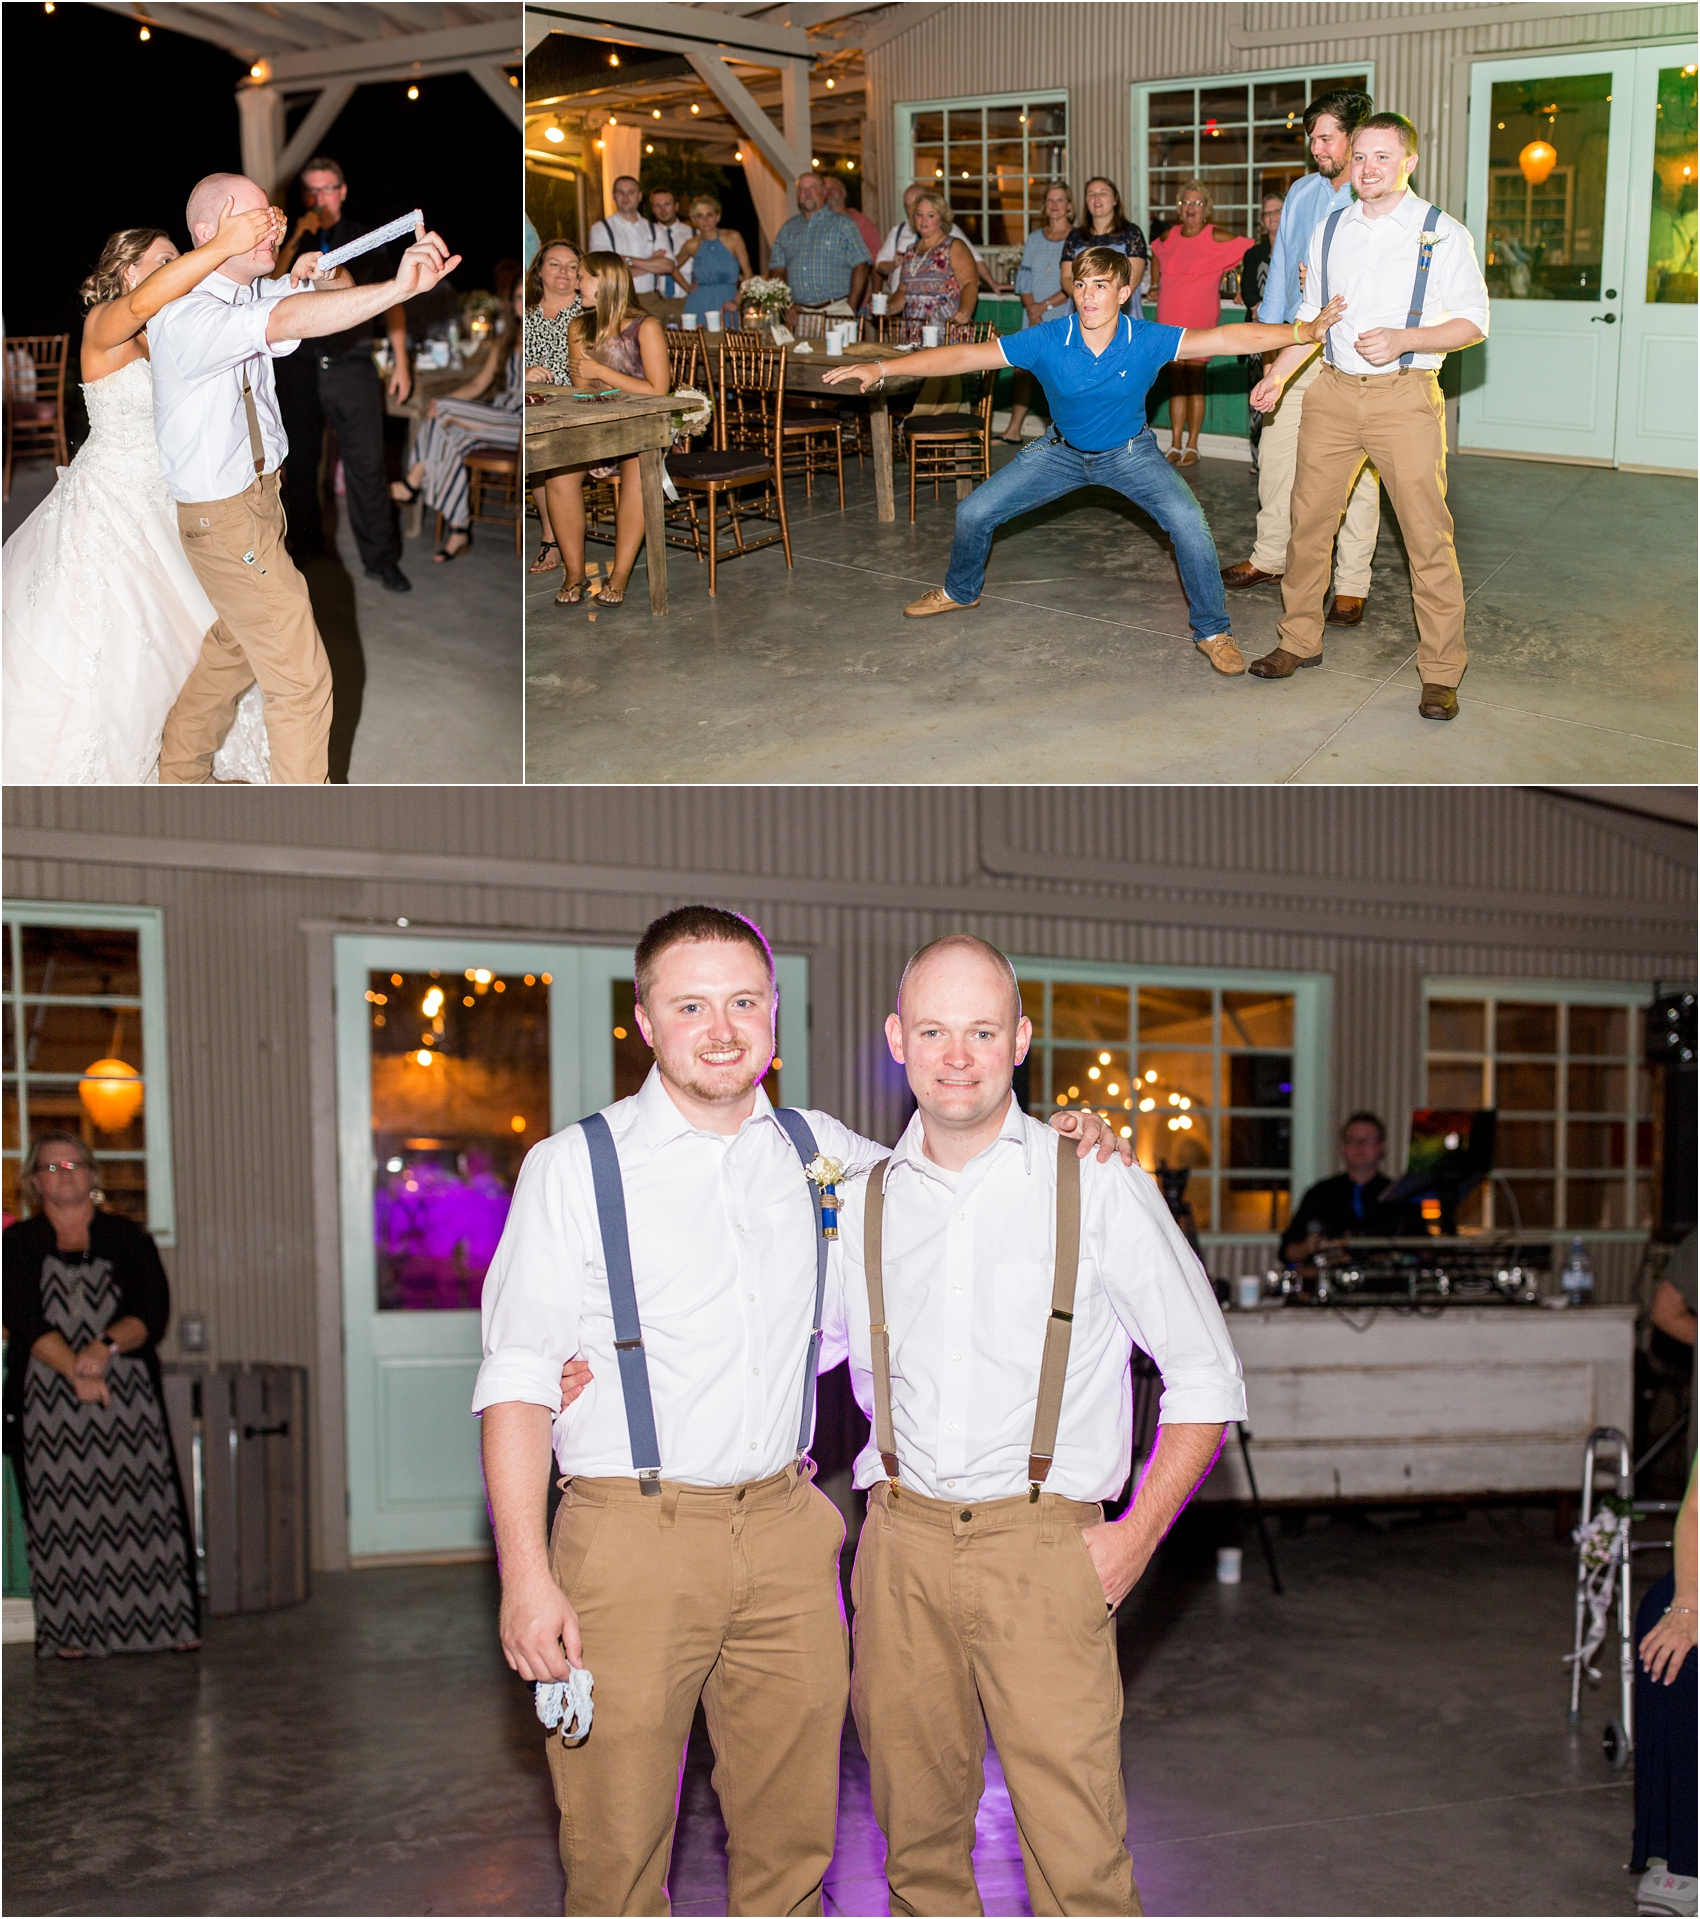 Savannah Eve Photography- Hardin-Petty Wedding-19.jpg